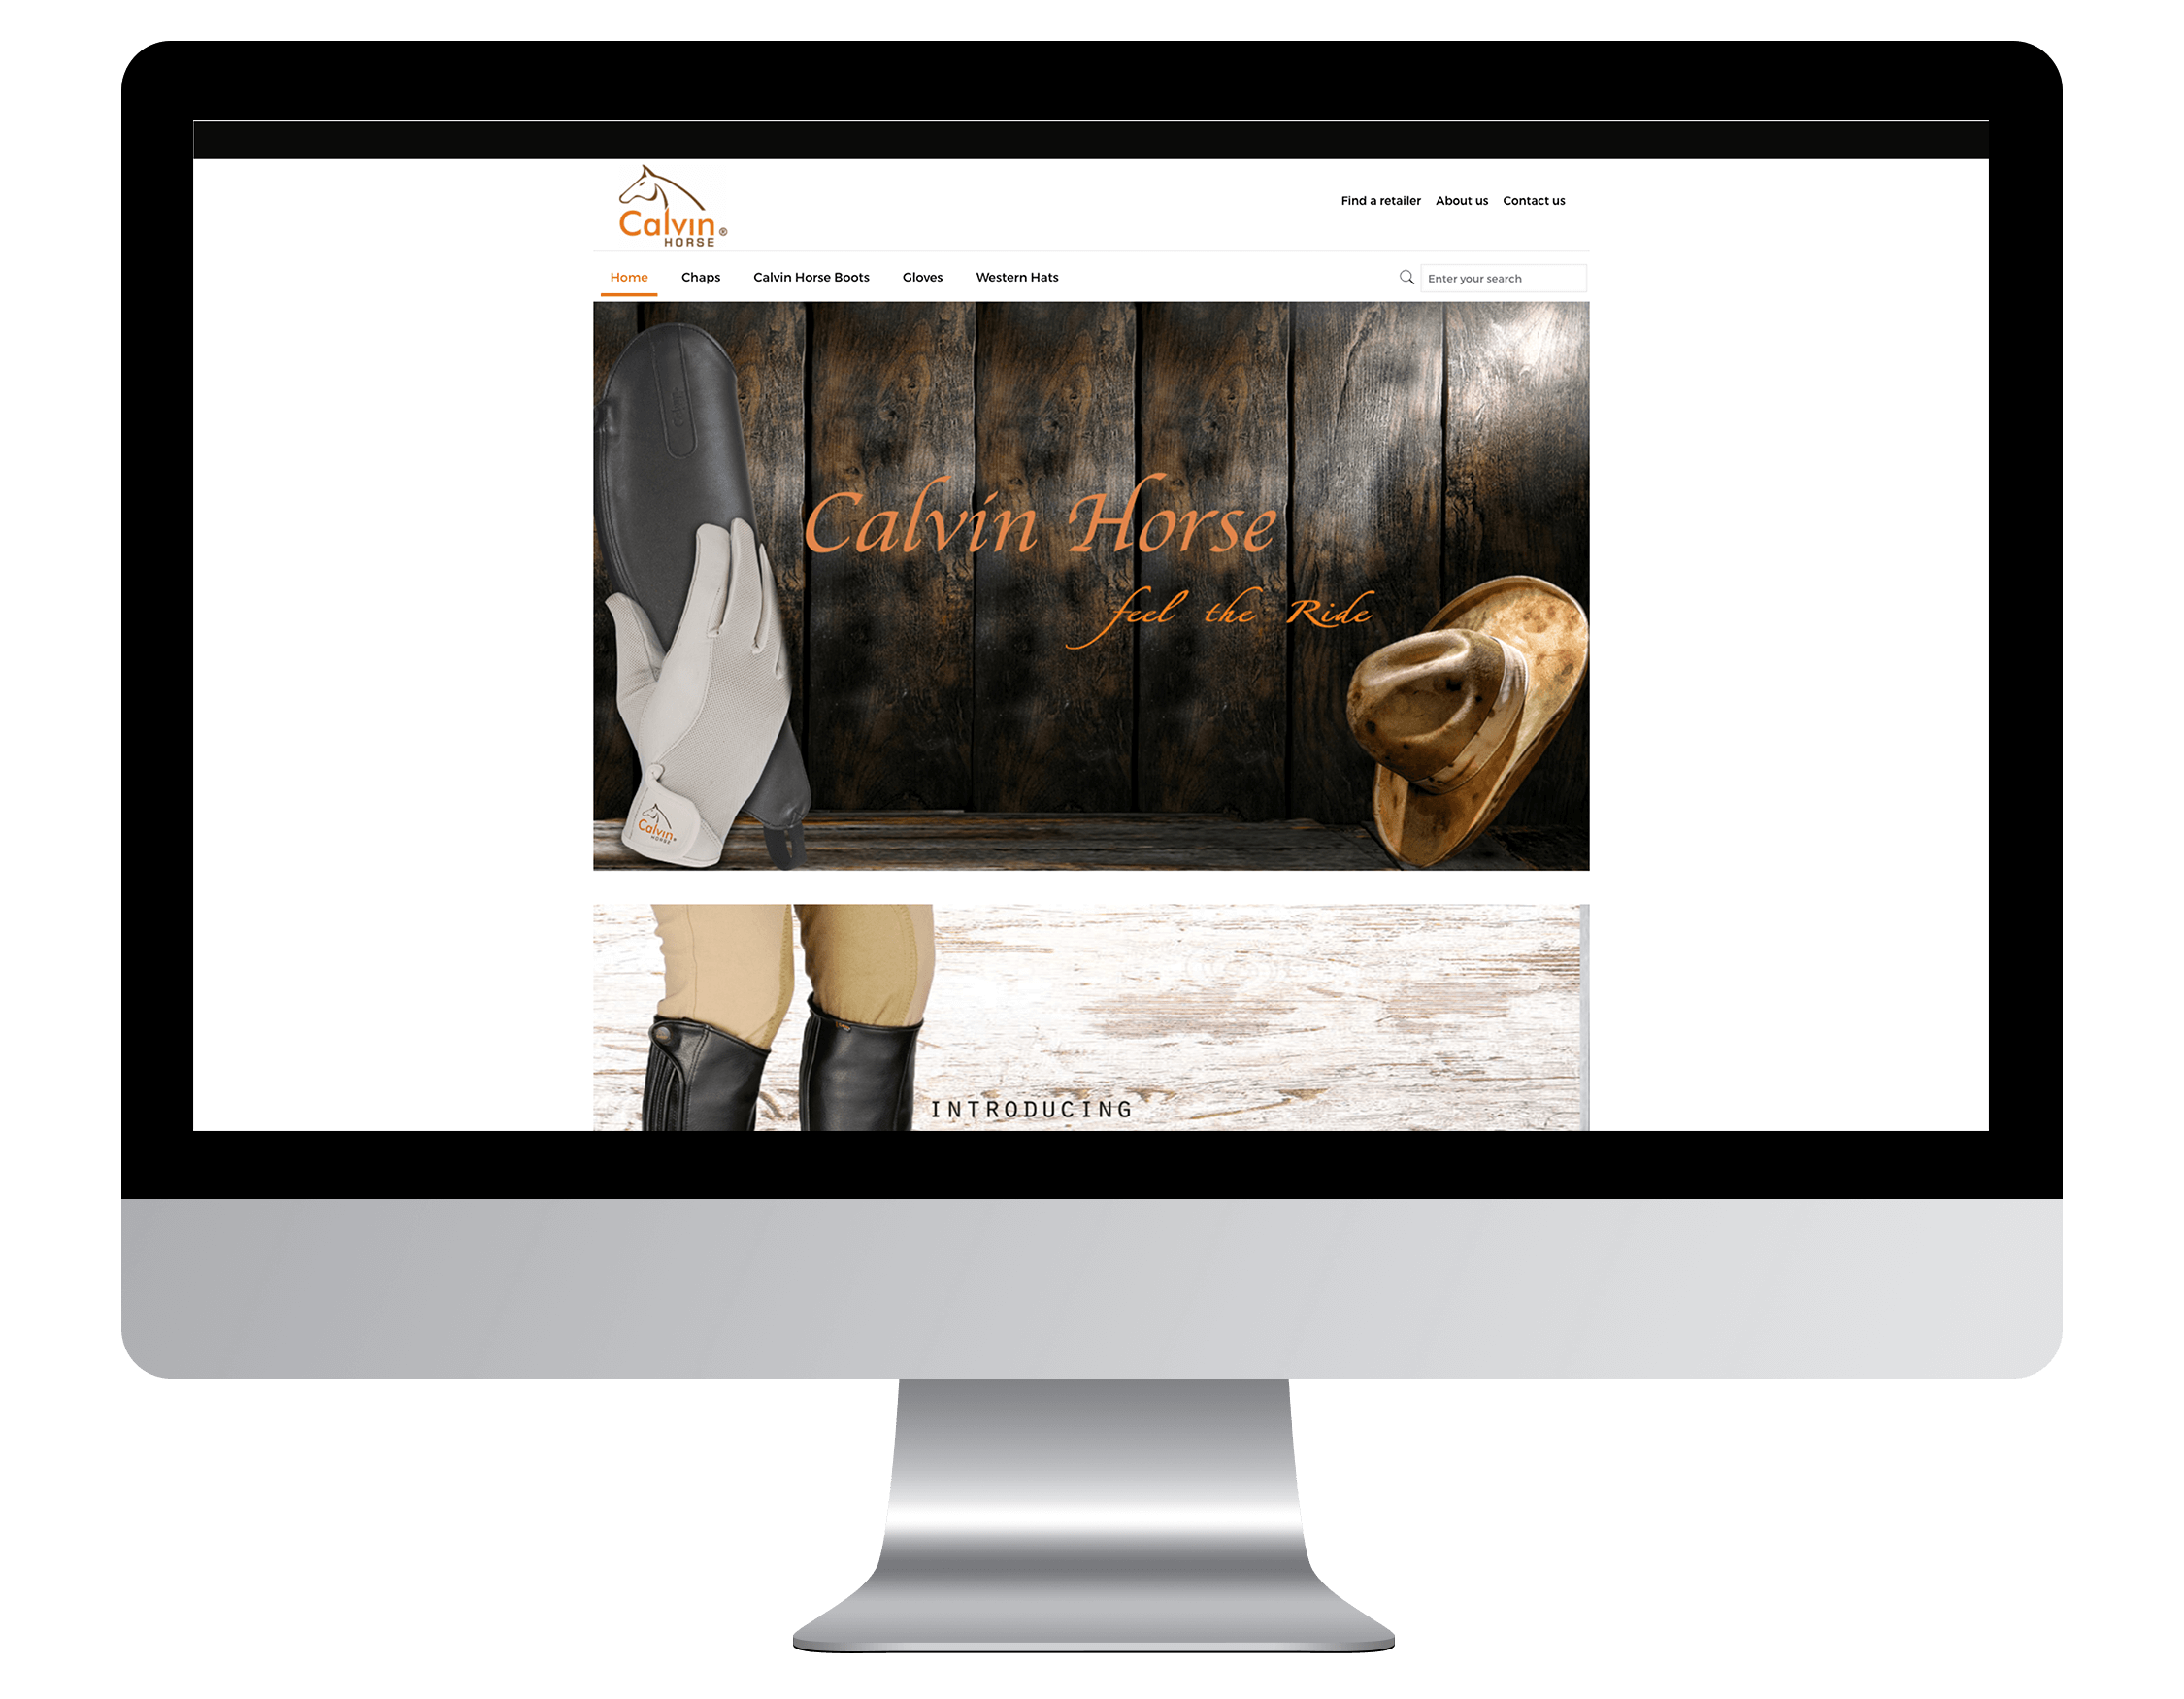 Een nieuwe website laten maken door Calvin Horse